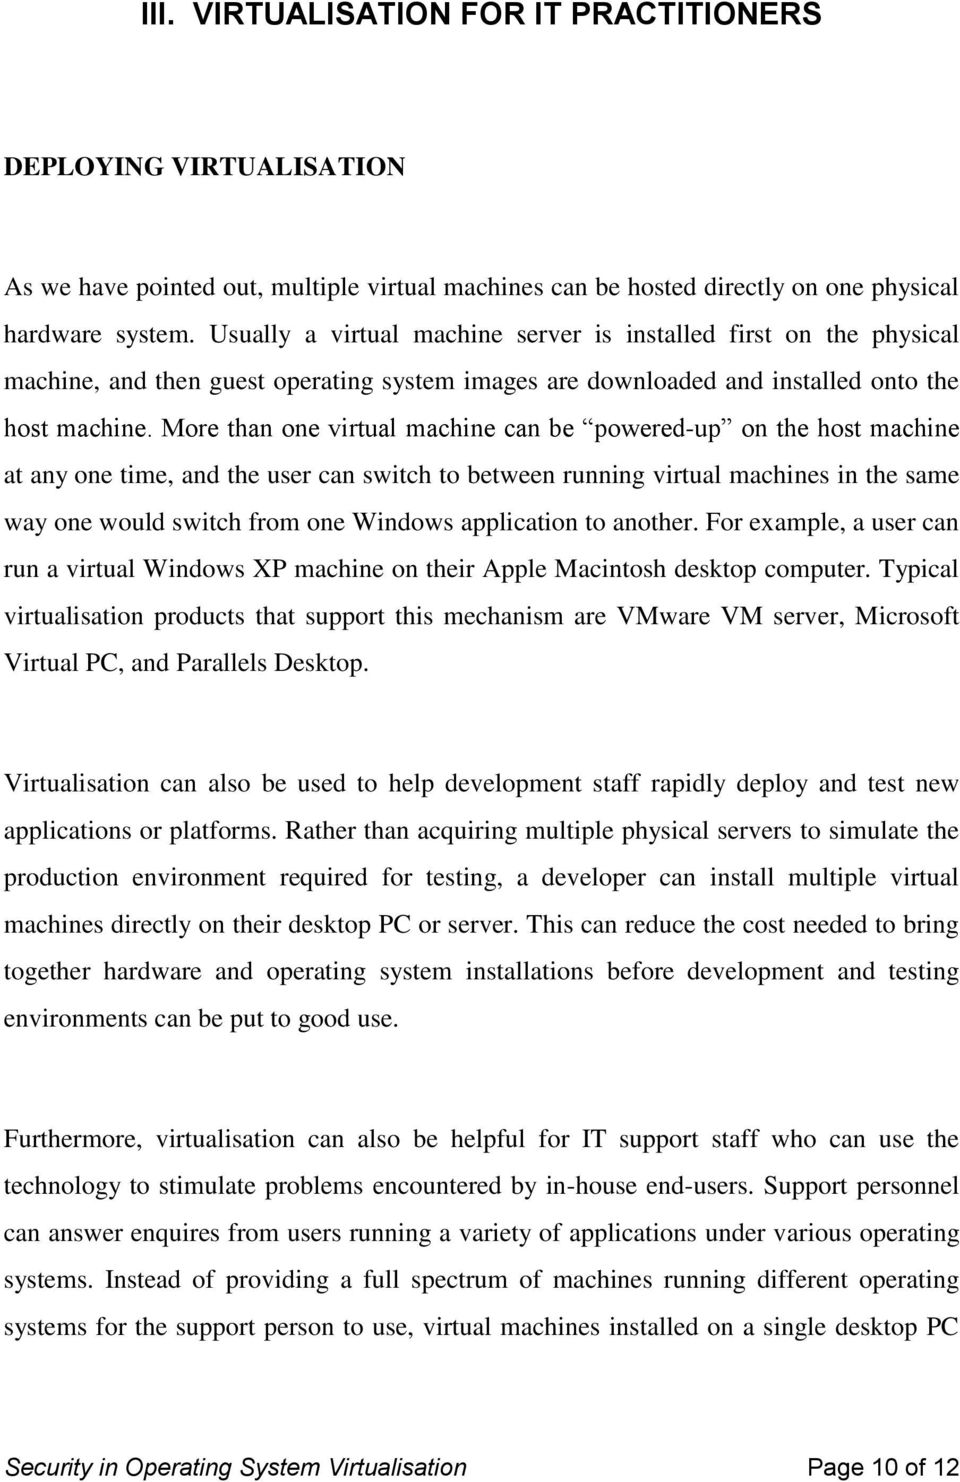 More than one virtual machine can be powered-up on the host machine at any one time, and the user can switch to between running virtual machines in the same way one would switch from one Windows